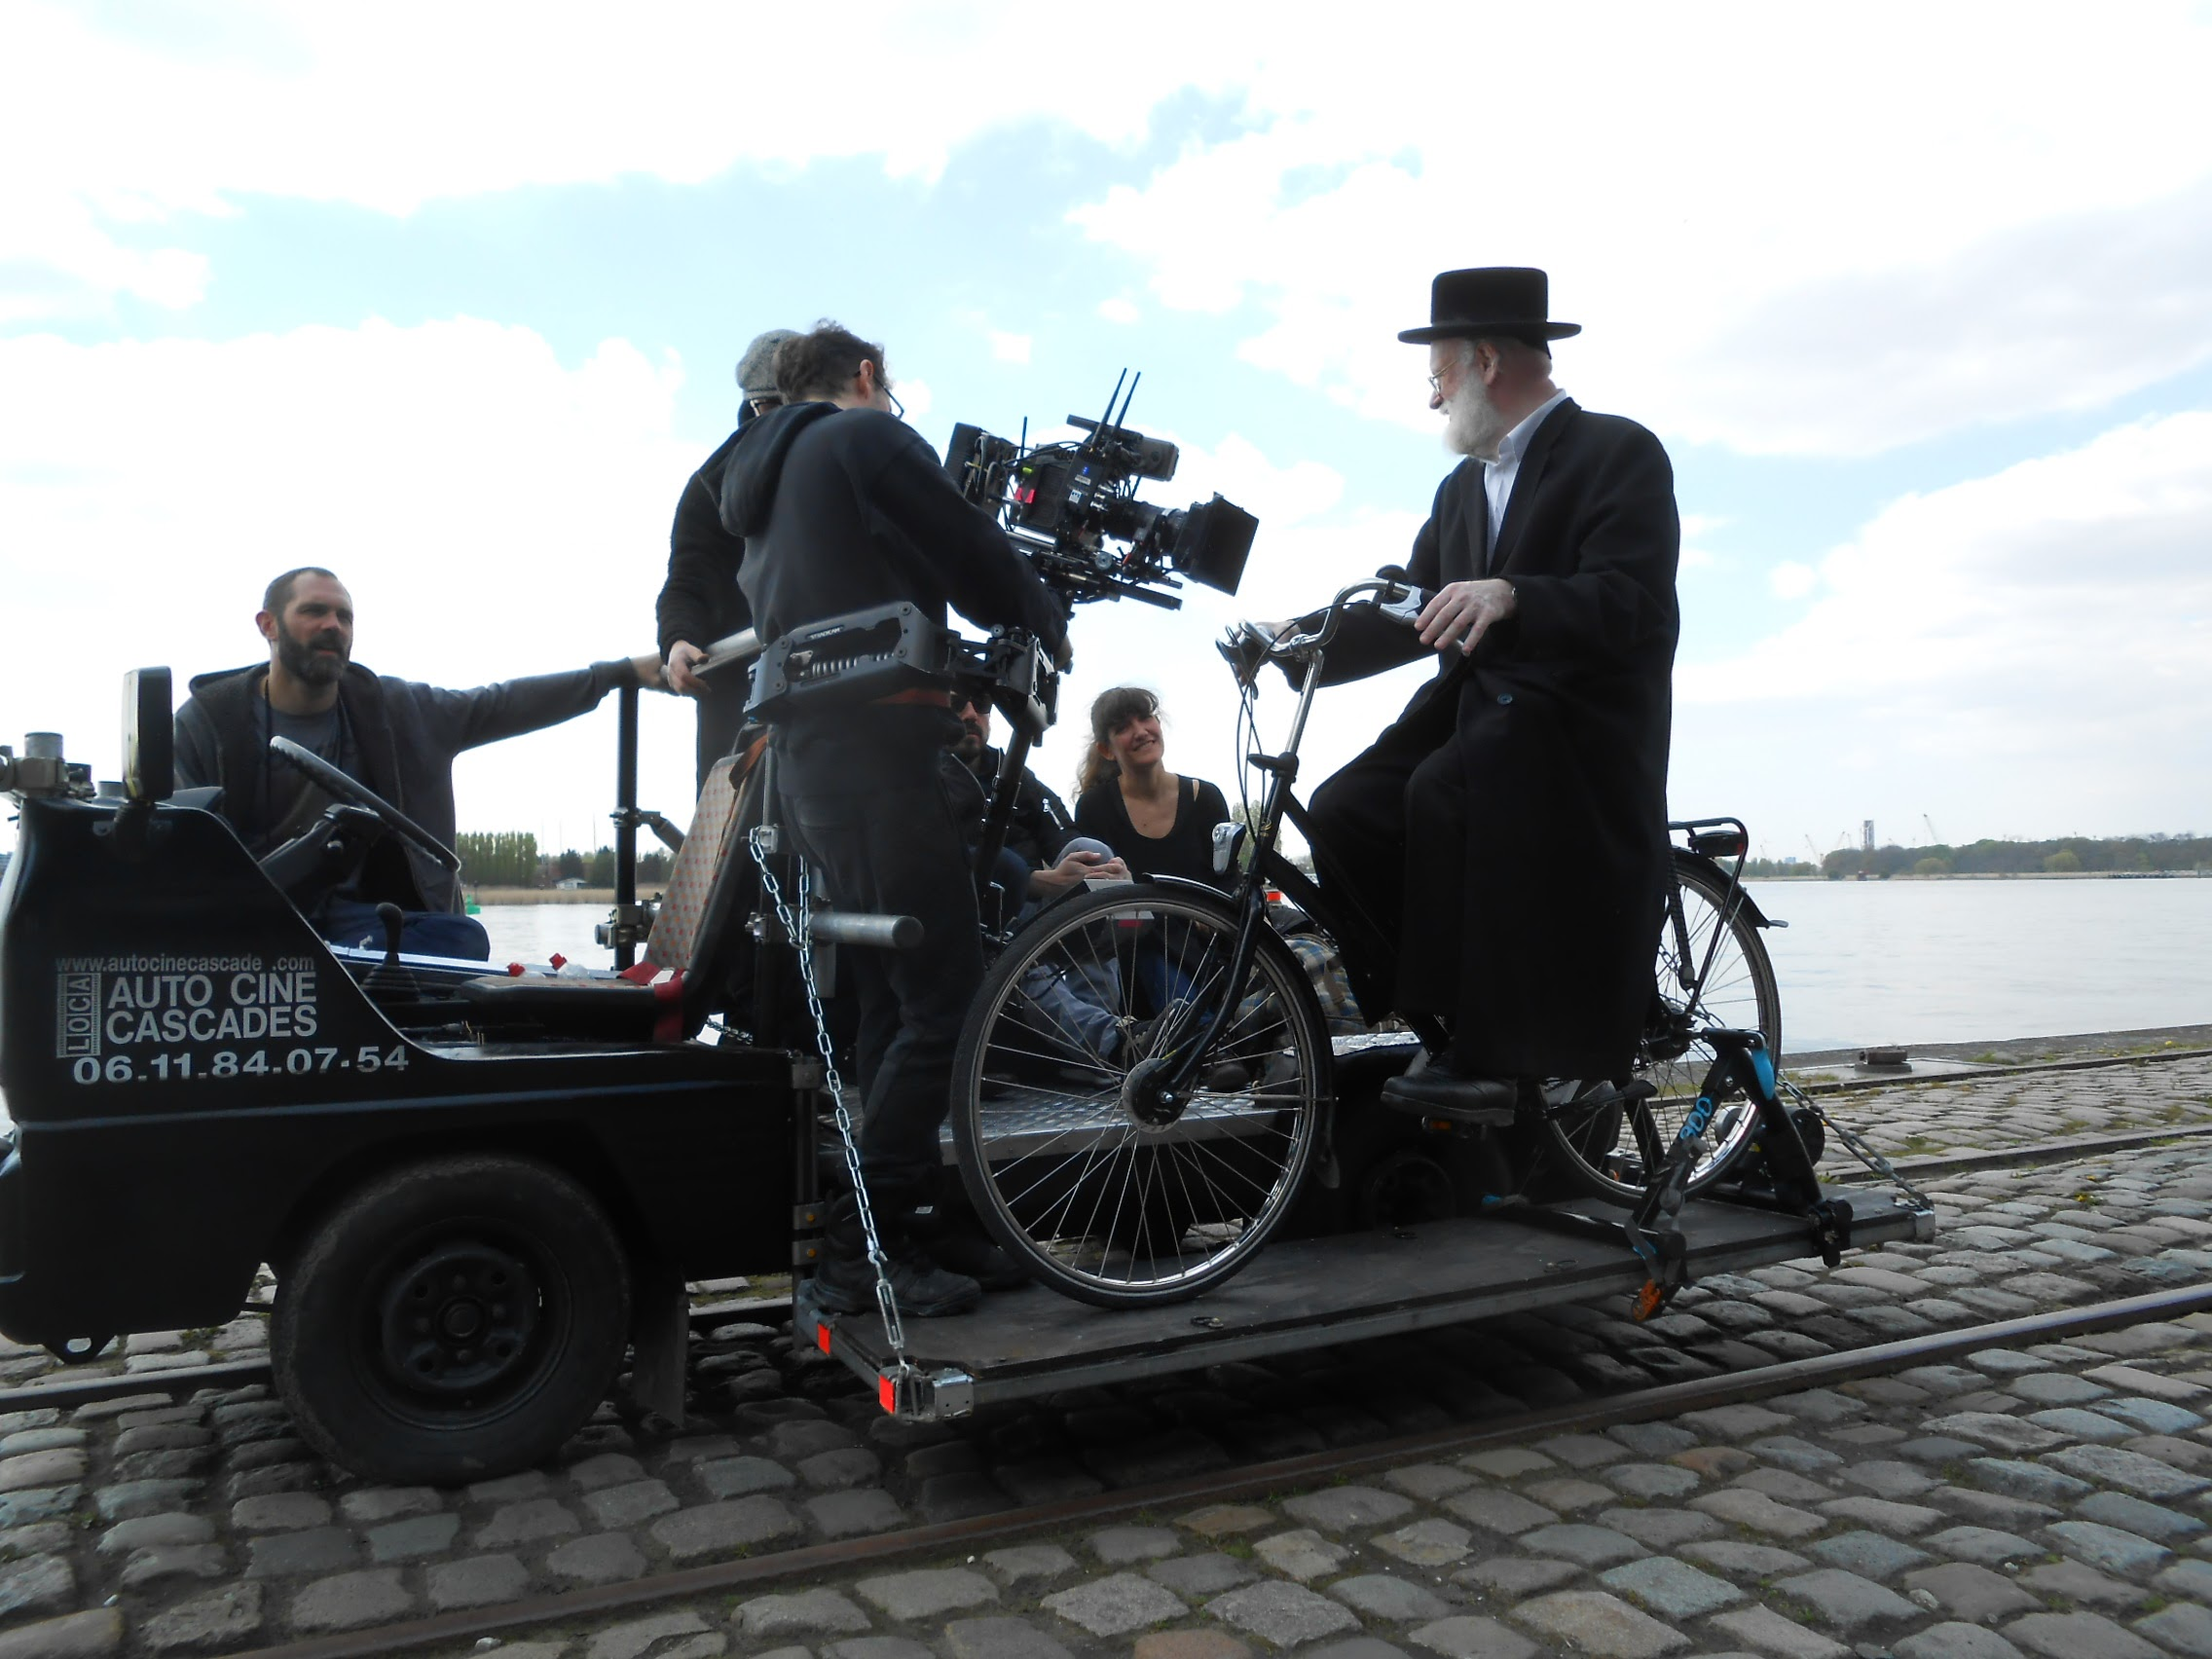 tournage-docu-fiction-anvers-alexis-veller-11